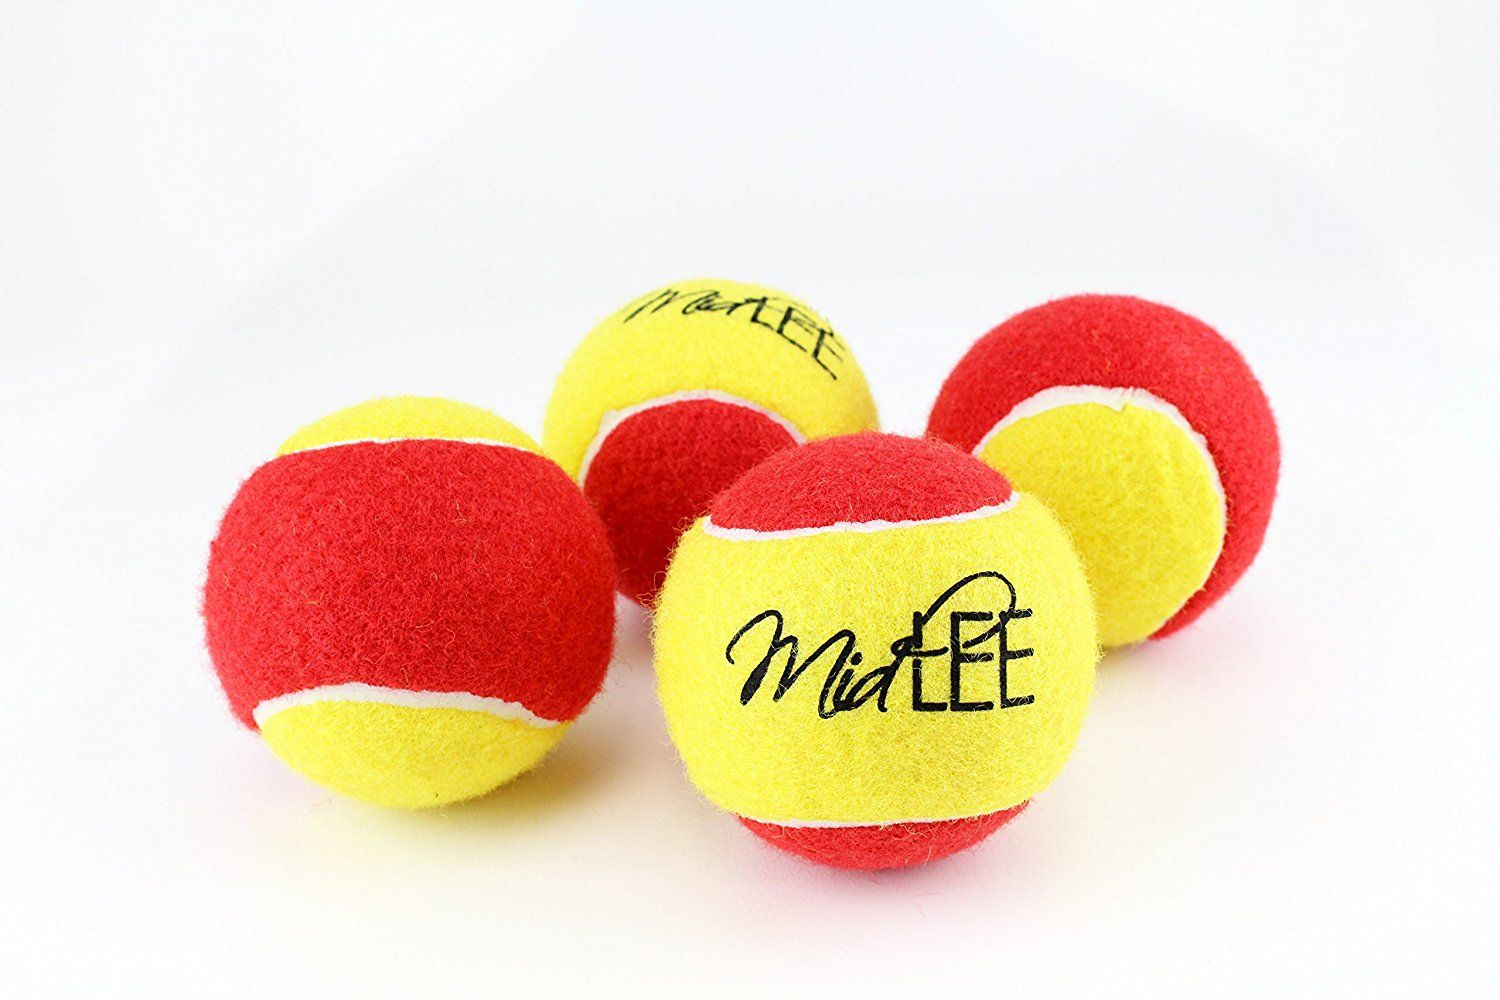 Large 3' Yellow and Red Dog Tennis Ball Pack of 4 by Midlee >>> Be sure to check out this awesome product. (This is an affiliate link and I receive a commission for the sales) #Doggies